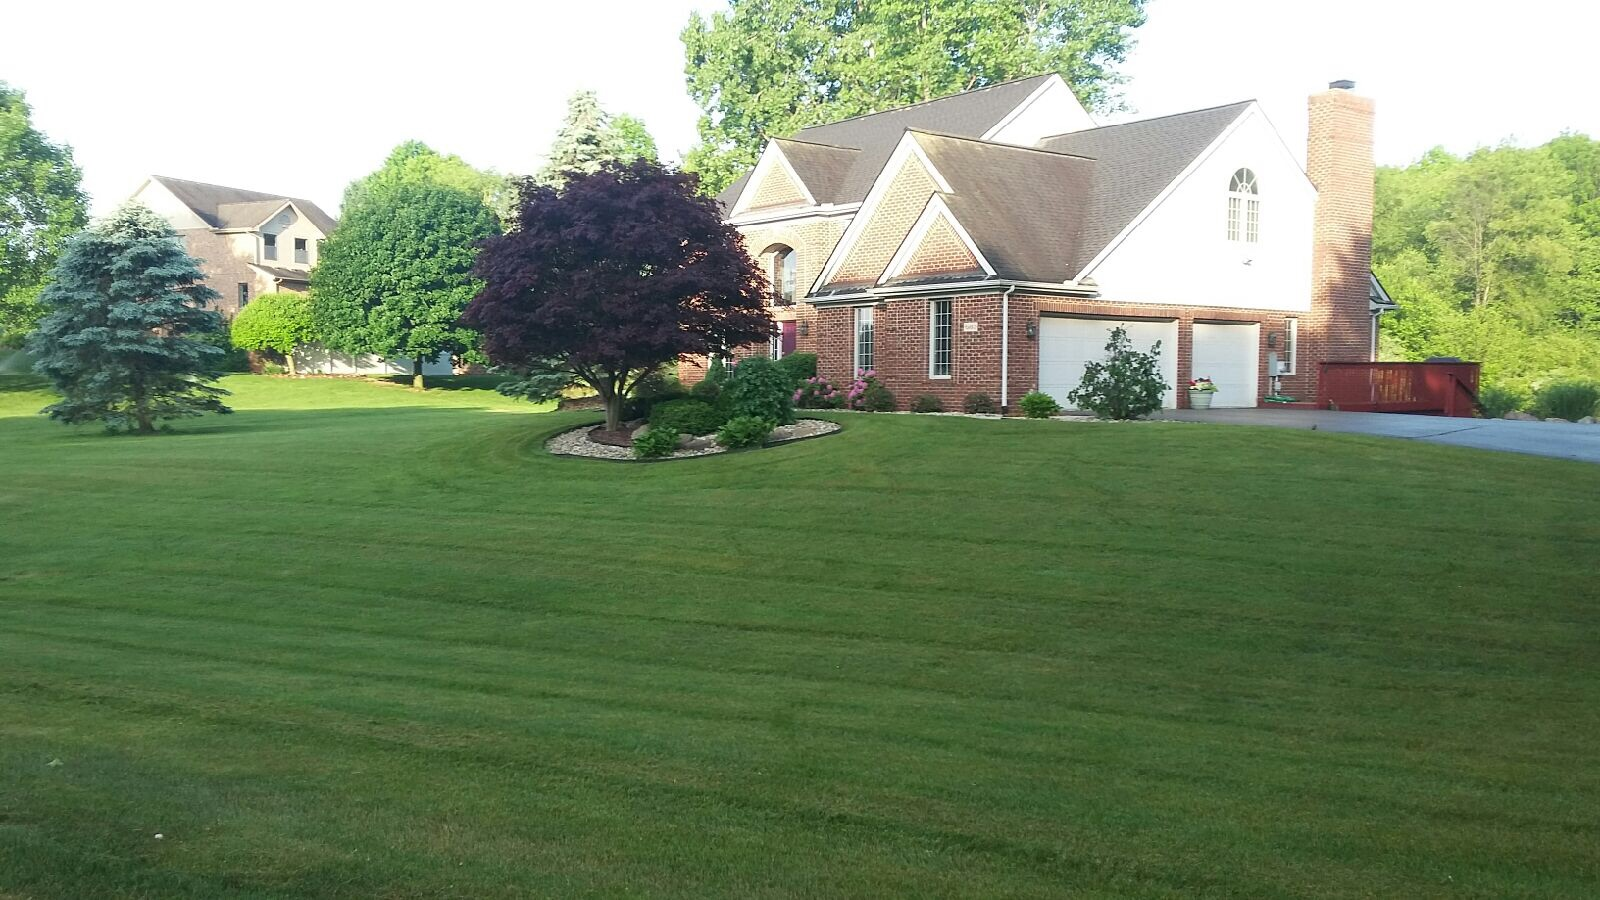 Feature Lawn Friday - 6.3.16